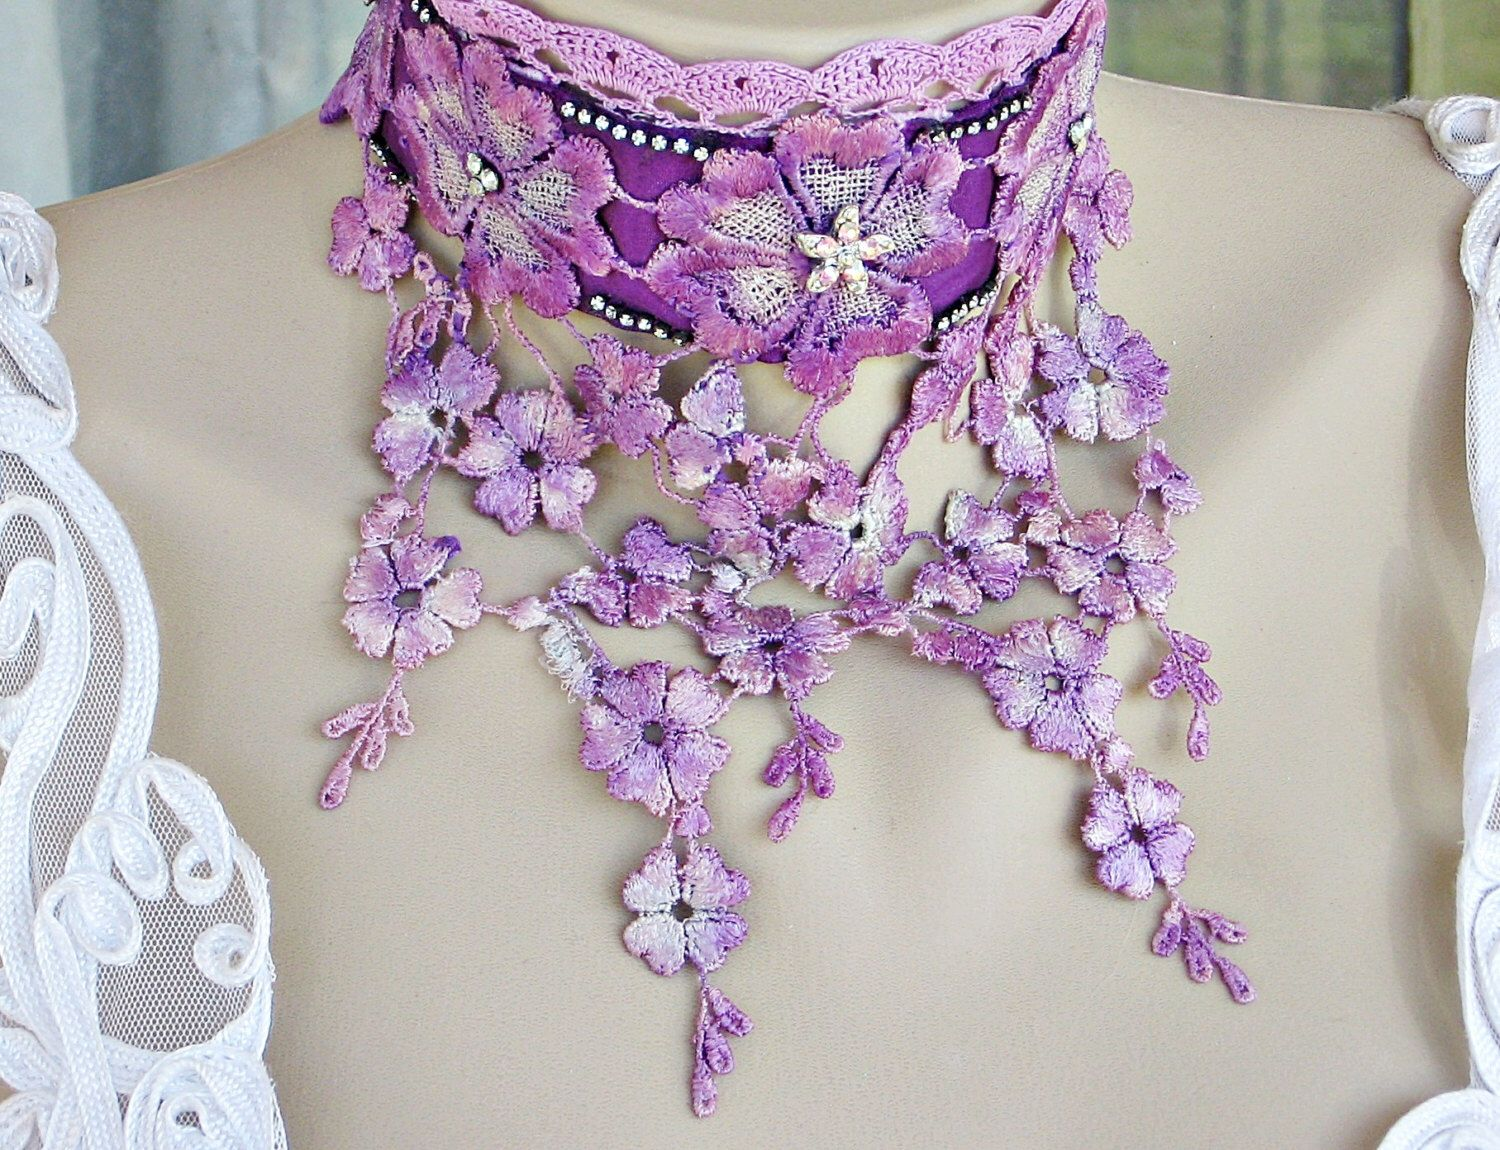 Purple Victorian Lace Choker, Lace Art Deco Choker, Hand Dyed Purple Lace Flower Bib Necklace, Lace Flower Bridal Choker, Lace Jewelry by LaVieilleLune on Etsy https://www.etsy.com/listing/125822006/purple-victorian-lace-choker-lace-art